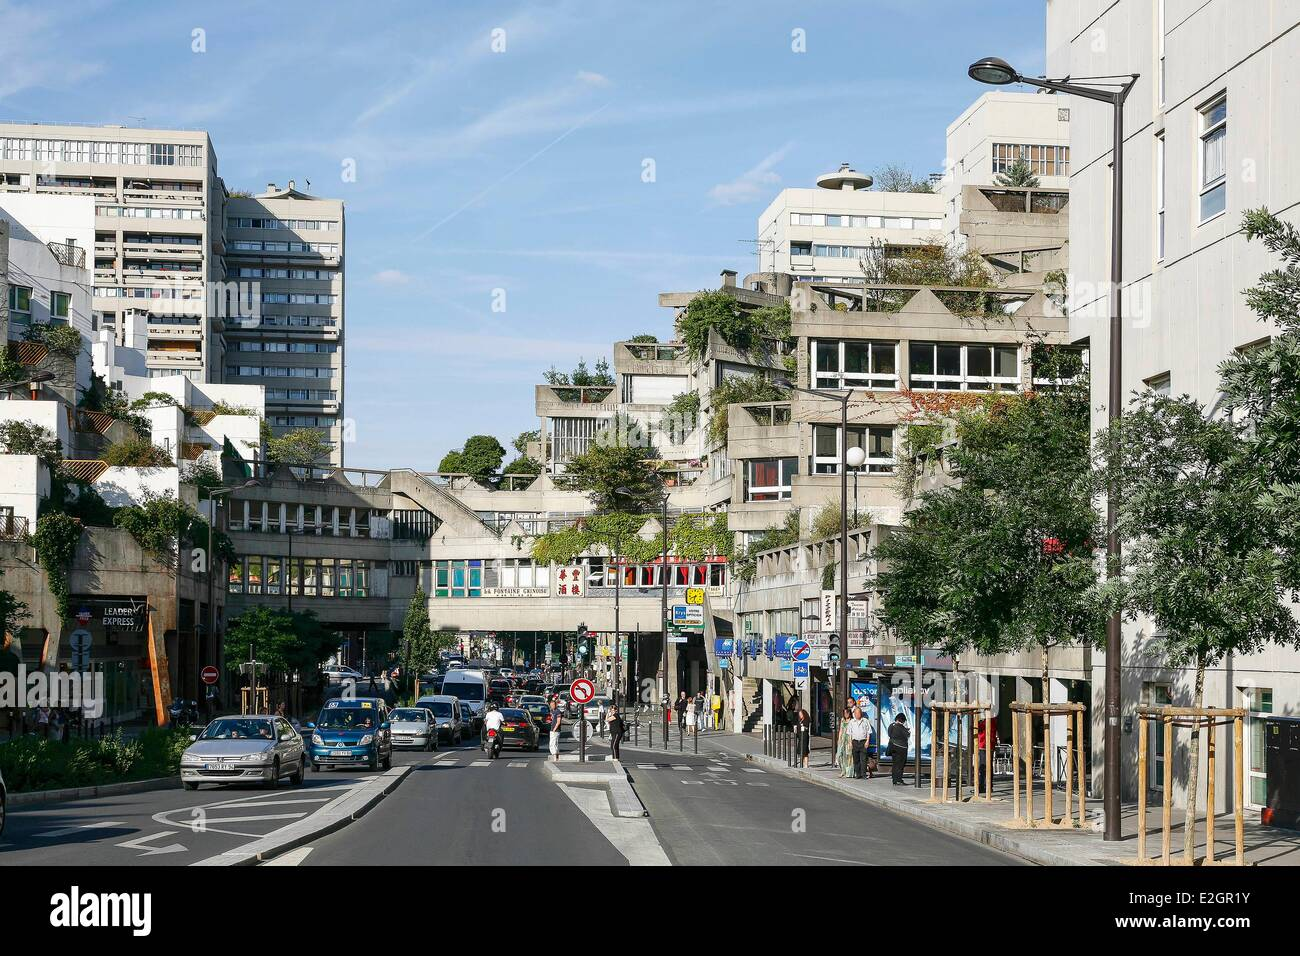 france val de marne ivry sur seine avenue georges gosnat stock photo 70440103 alamy. Black Bedroom Furniture Sets. Home Design Ideas